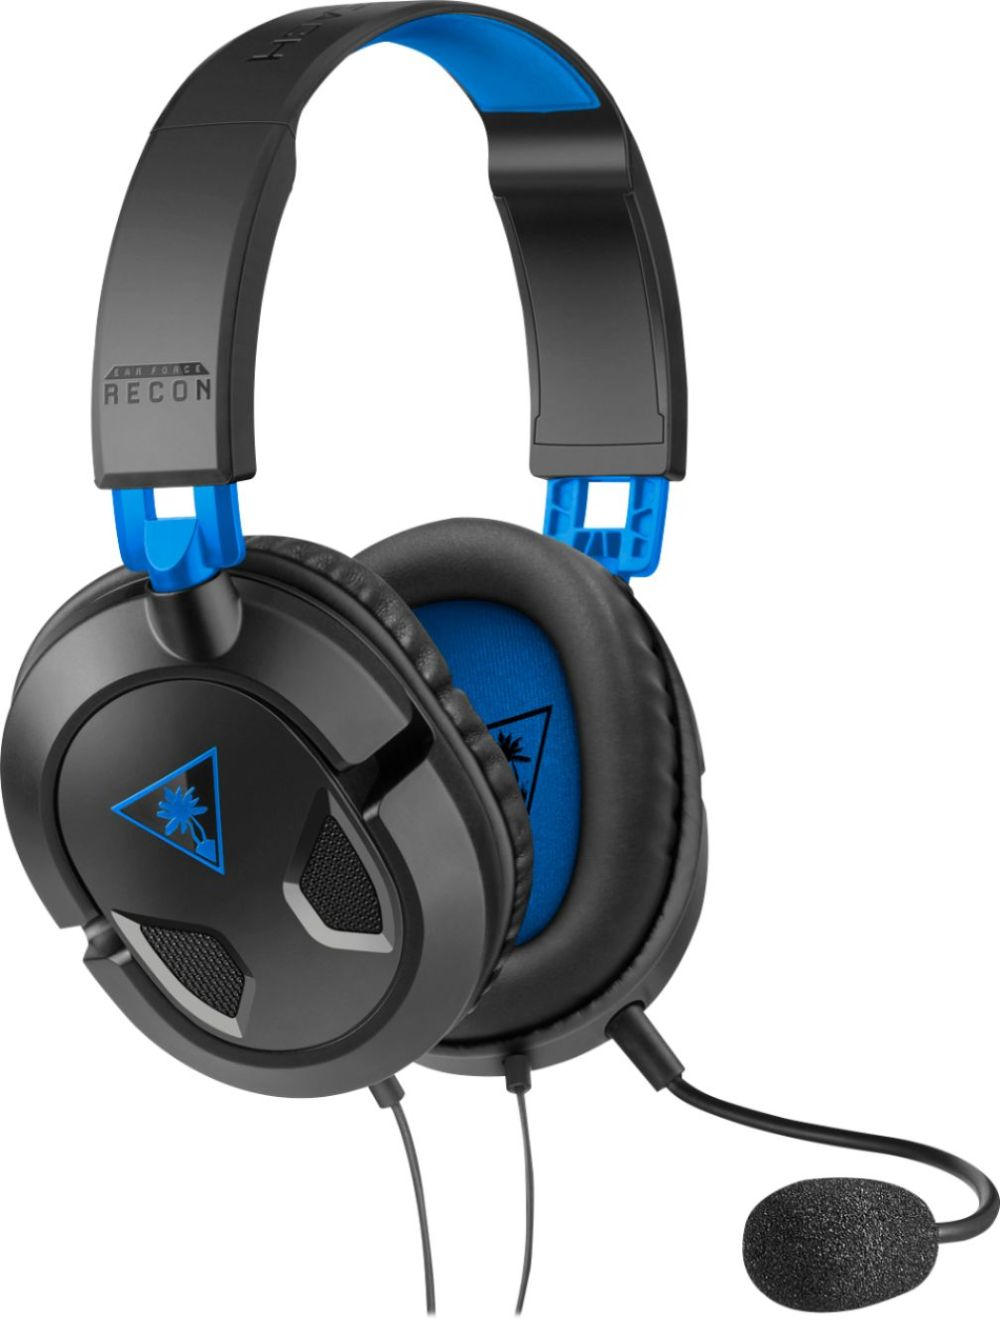 medium resolution of turtle beach recon 50p wired stereo gaming headset black blue tbs 3303 01 best buy